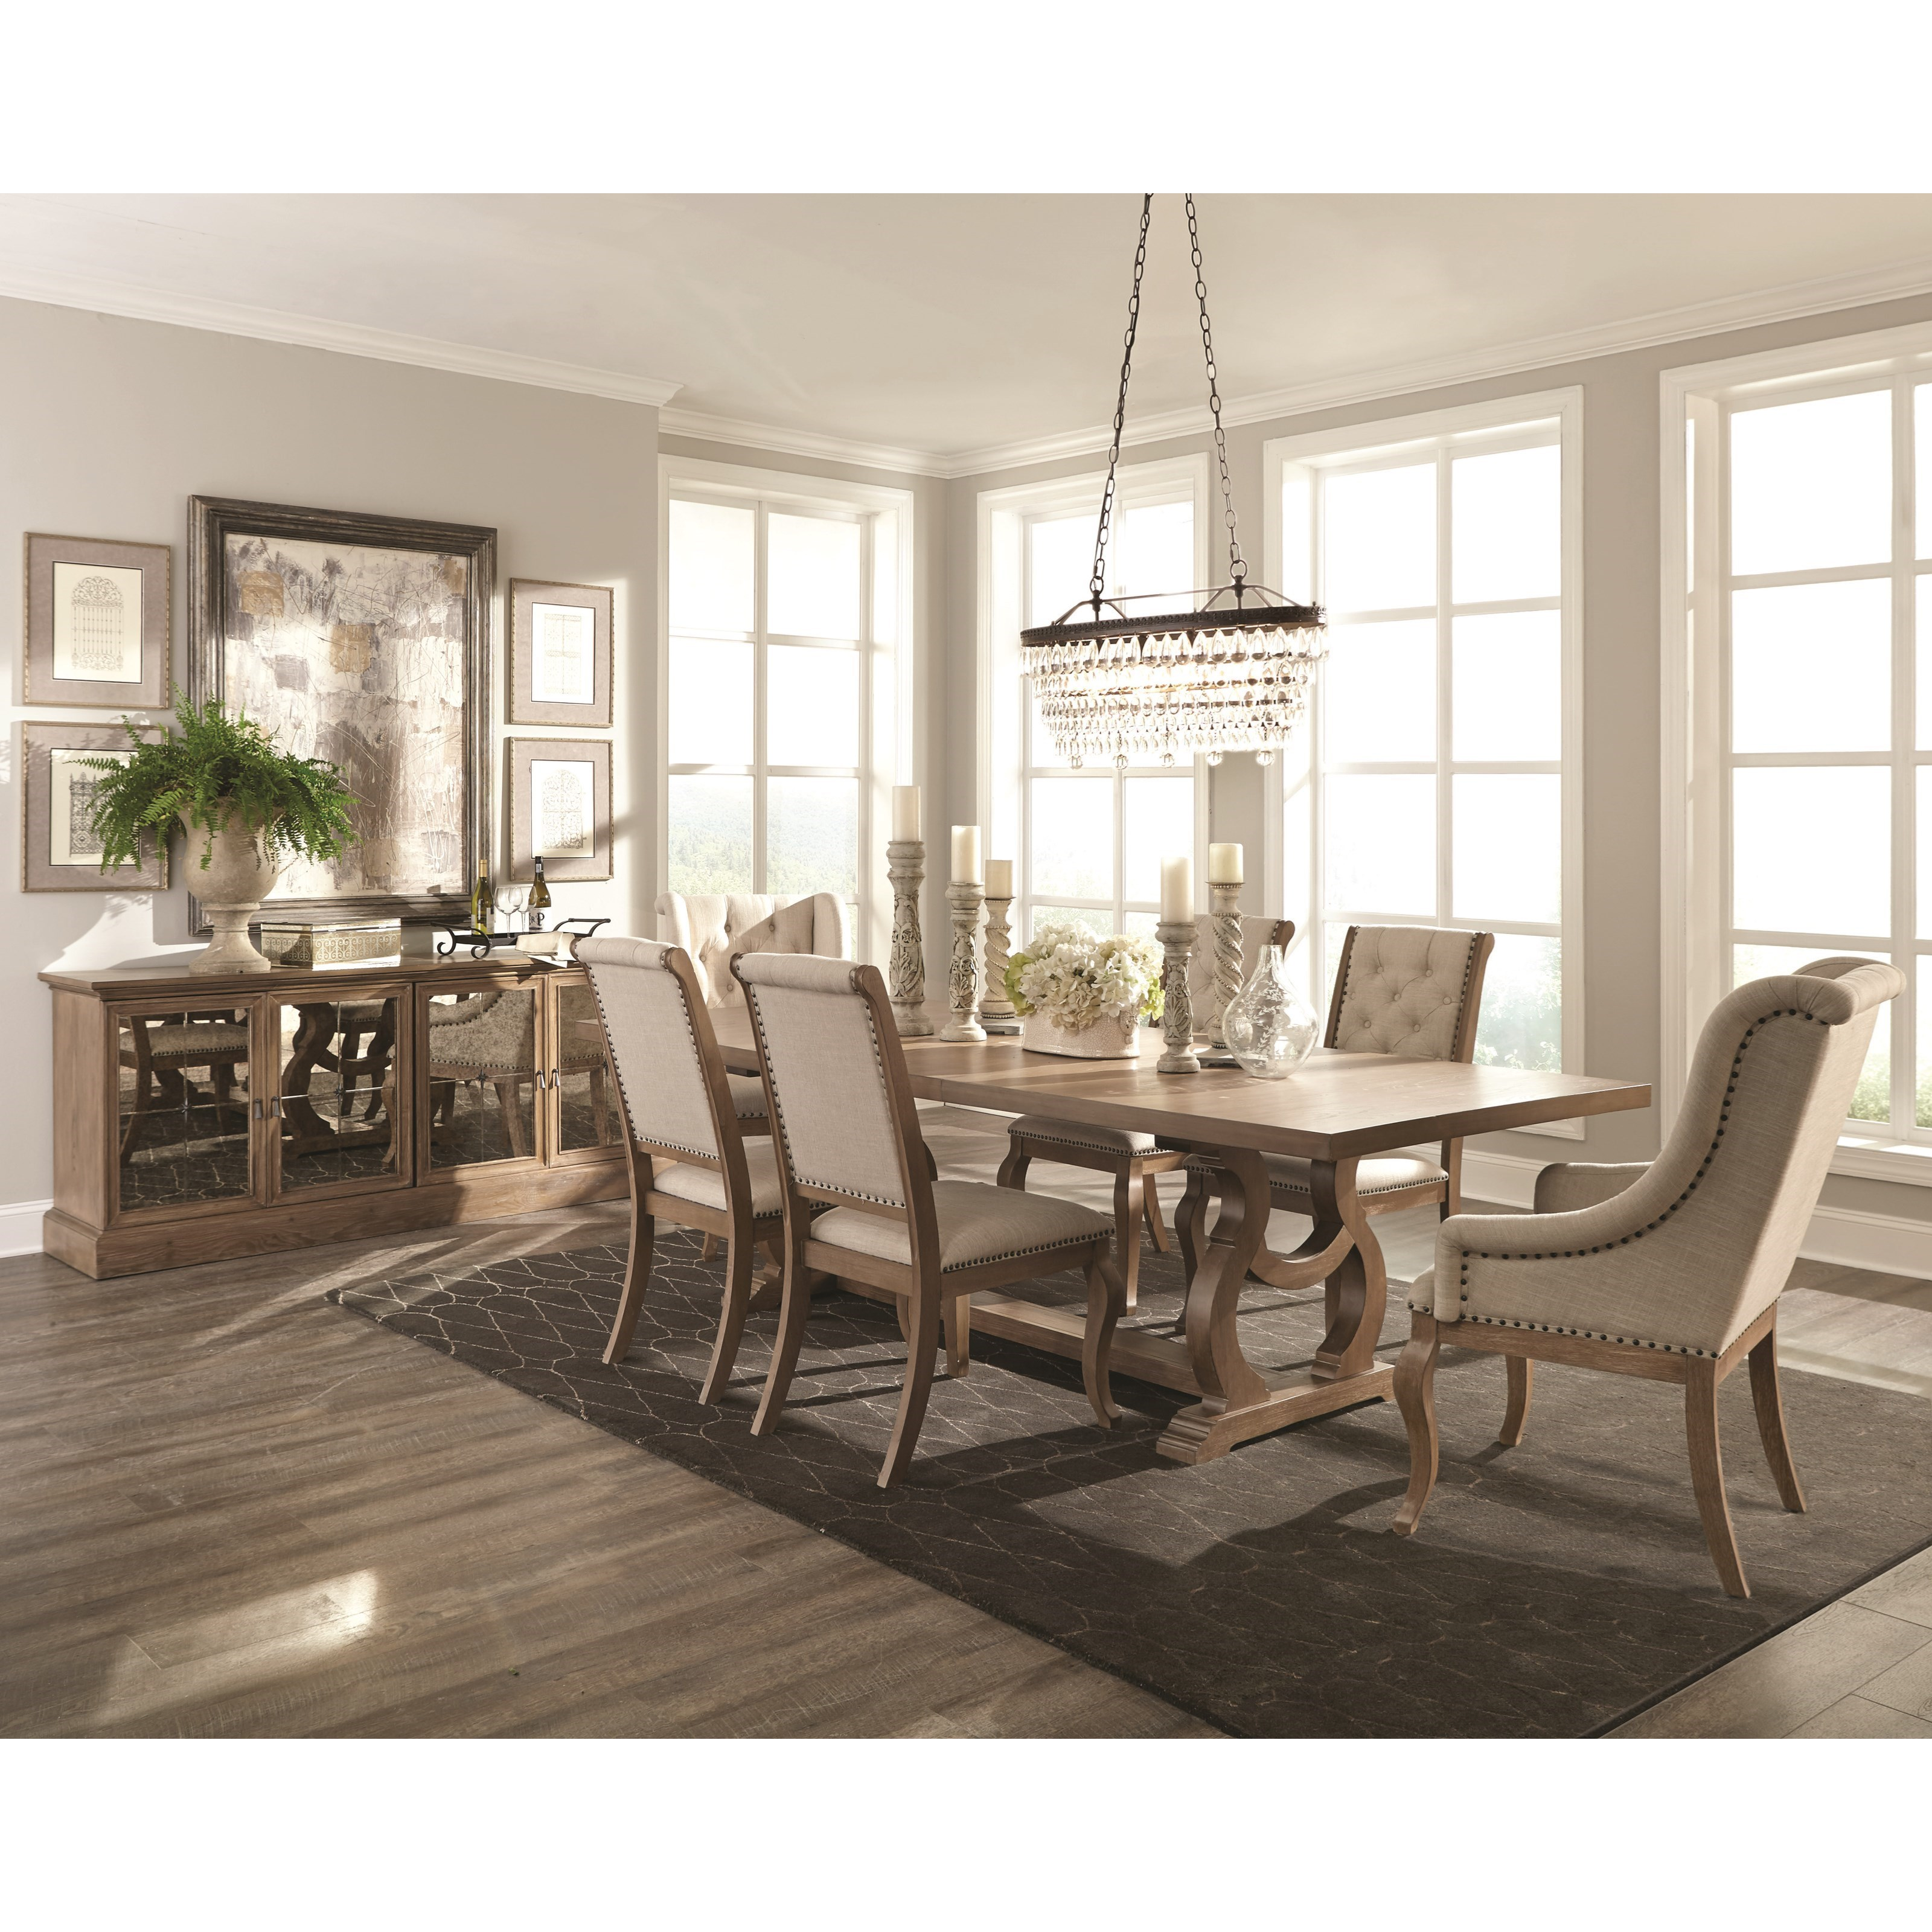 Dining And Living Room Furniture: Scott Living Glen Cove Traditional Server With Mirrored